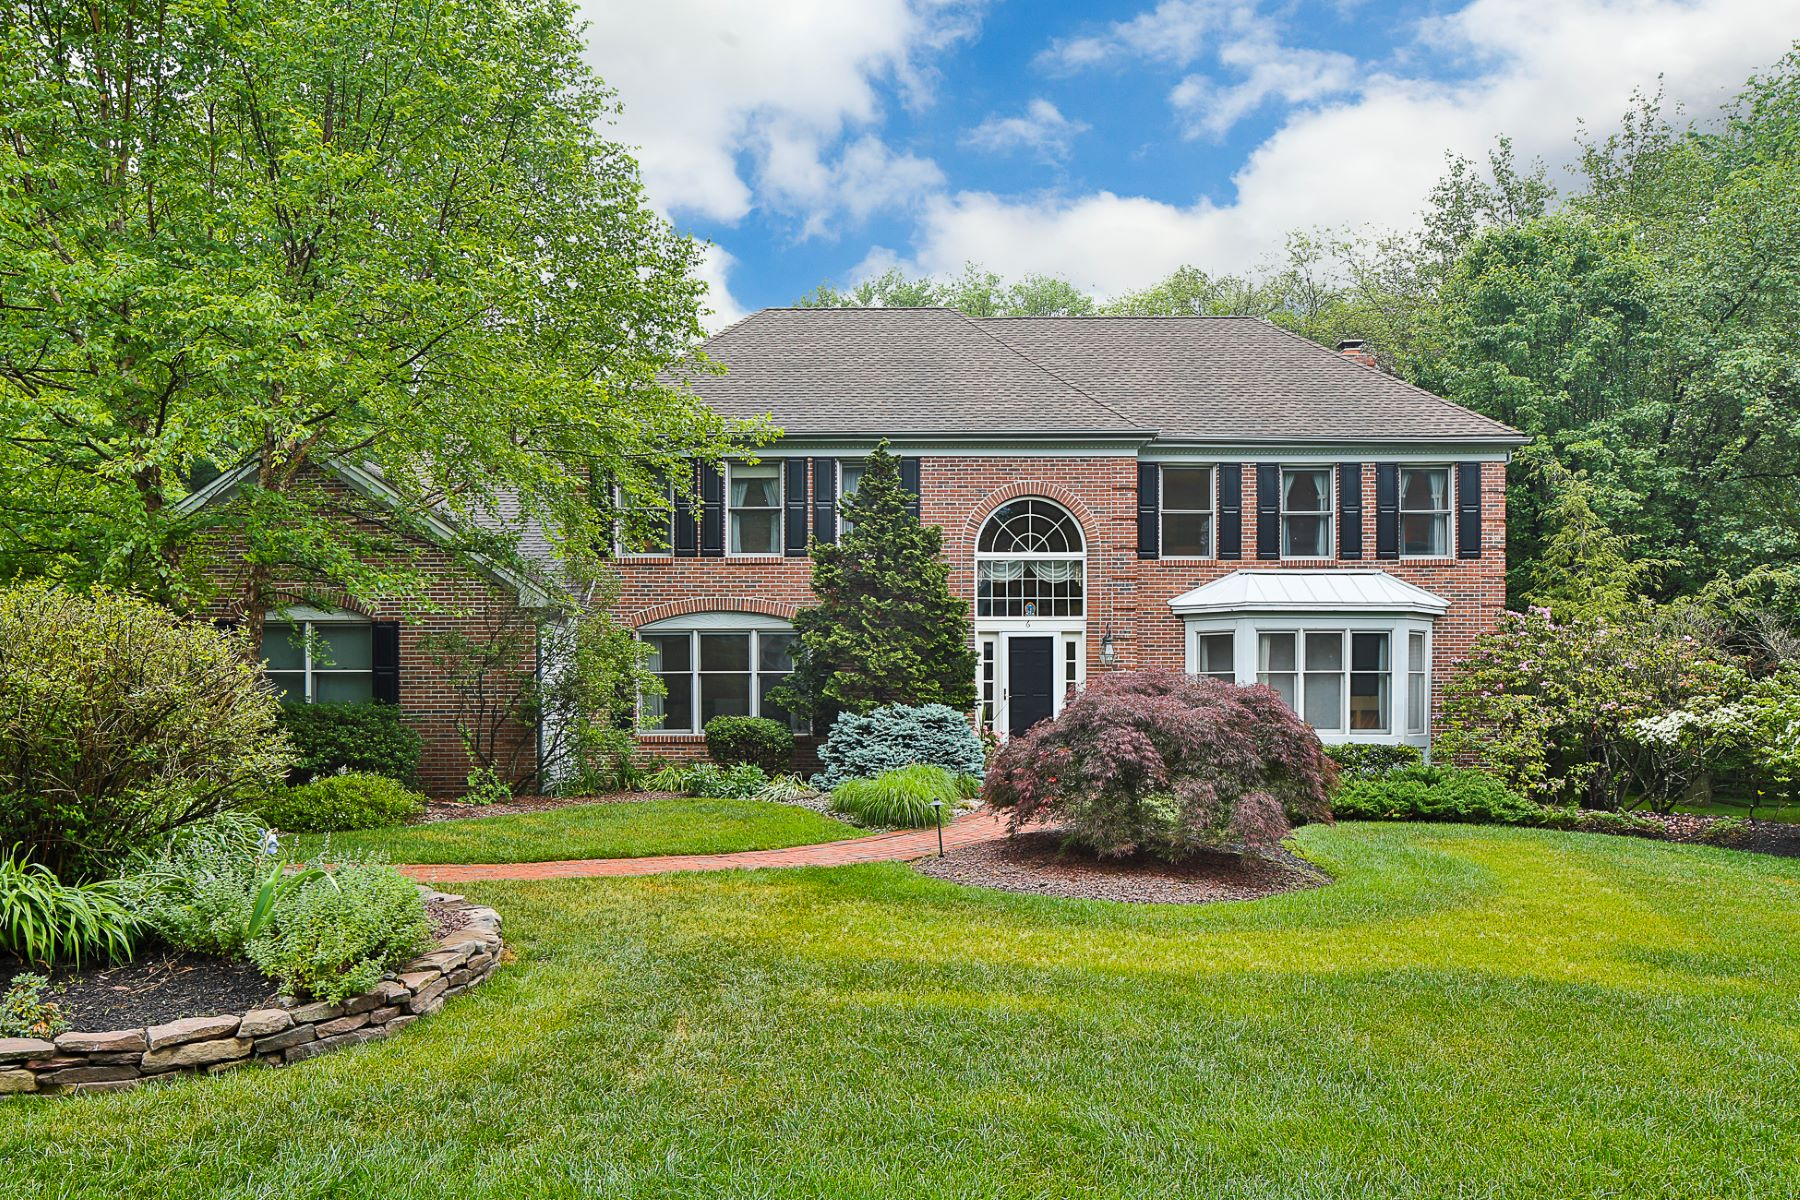 Maison unifamiliale pour l Vente à A Most Elegant Host and Haven in Kingsbrook 6 Registry Road, Lawrenceville, New Jersey 08648 États-UnisDans/Autour: Lawrence Township